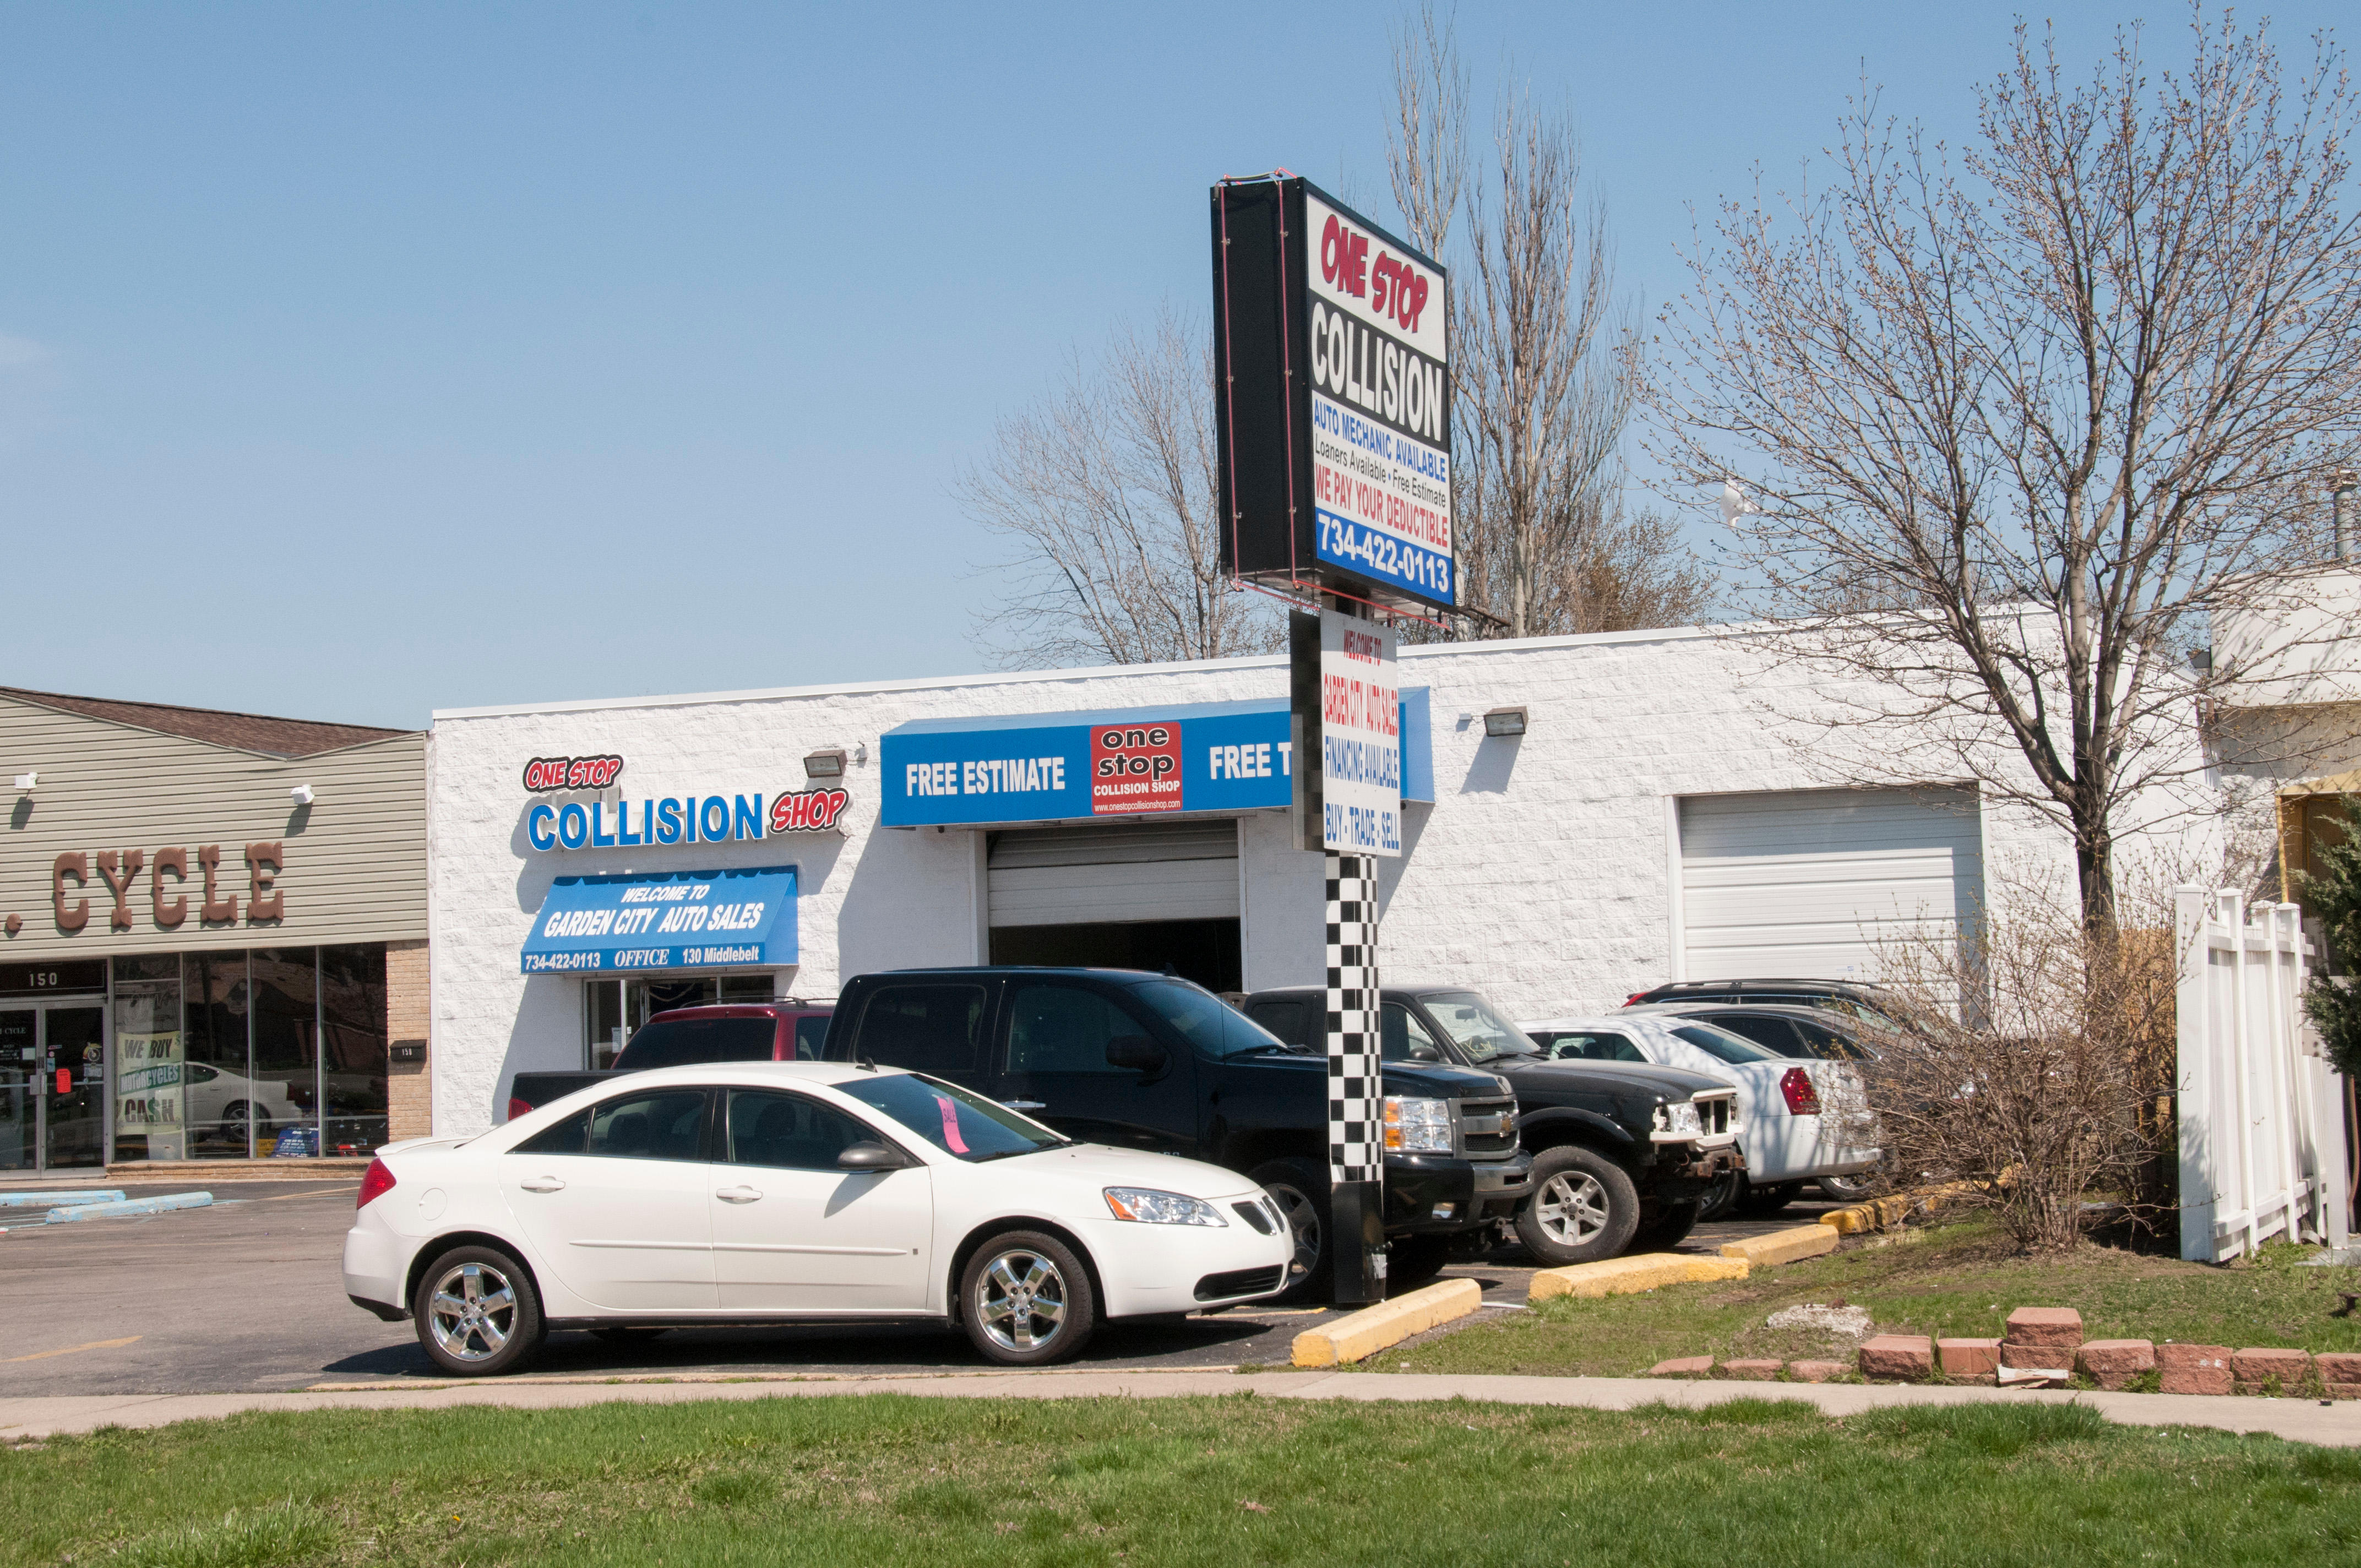 One Stop Collision Shop image 13